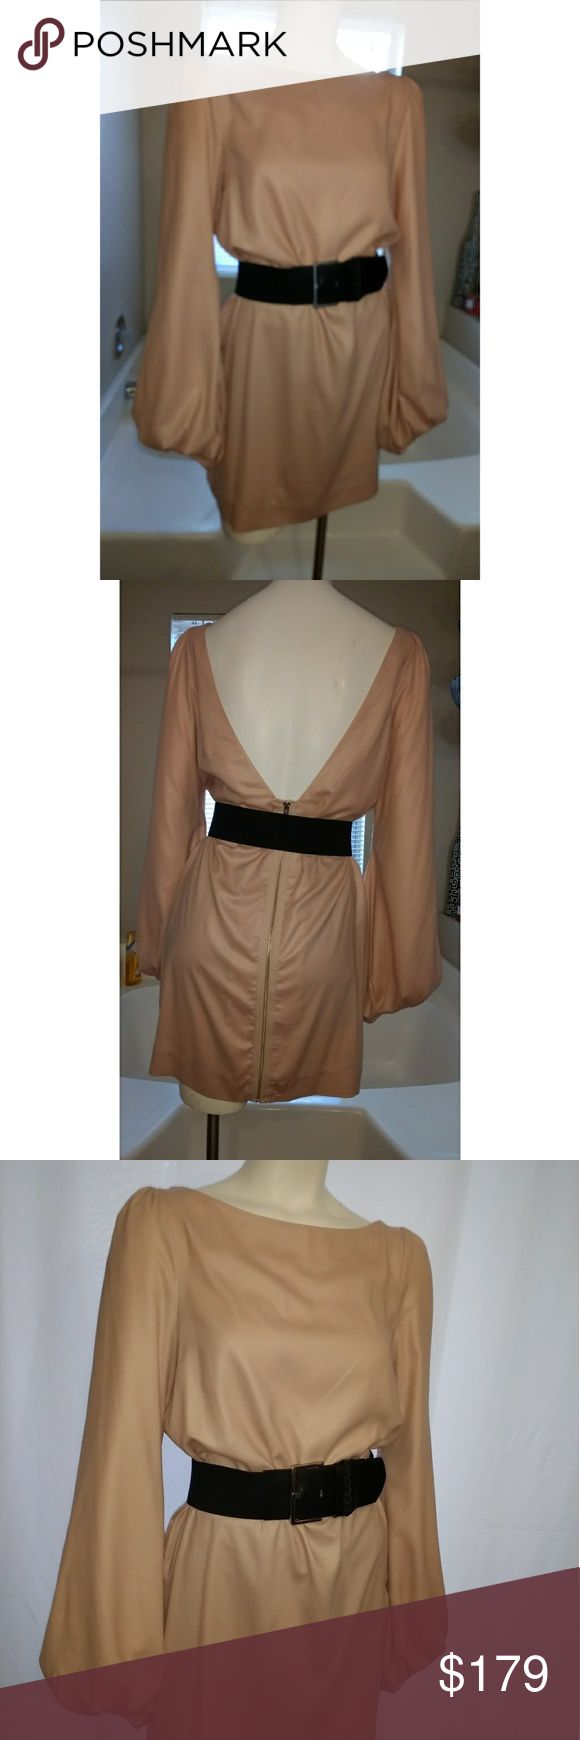 """Elizabeth and James Long Sleeve V-Back Dress Super chic, classy, sexy! I love the back of this dress and the sleeves! It's a beautiful pink color. Excellent condition! Will fit a size 4 as well. Features:   • Long Puffy Sleeves  • Open V-Back  • Fully Lined  • Crew Neckline  • 100% Polyester  • Lining 55% Nylon - 45% Silk  • Bust 17""""  • Total Length 33"""" Elizabeth and James Dresses Long Sleeve"""